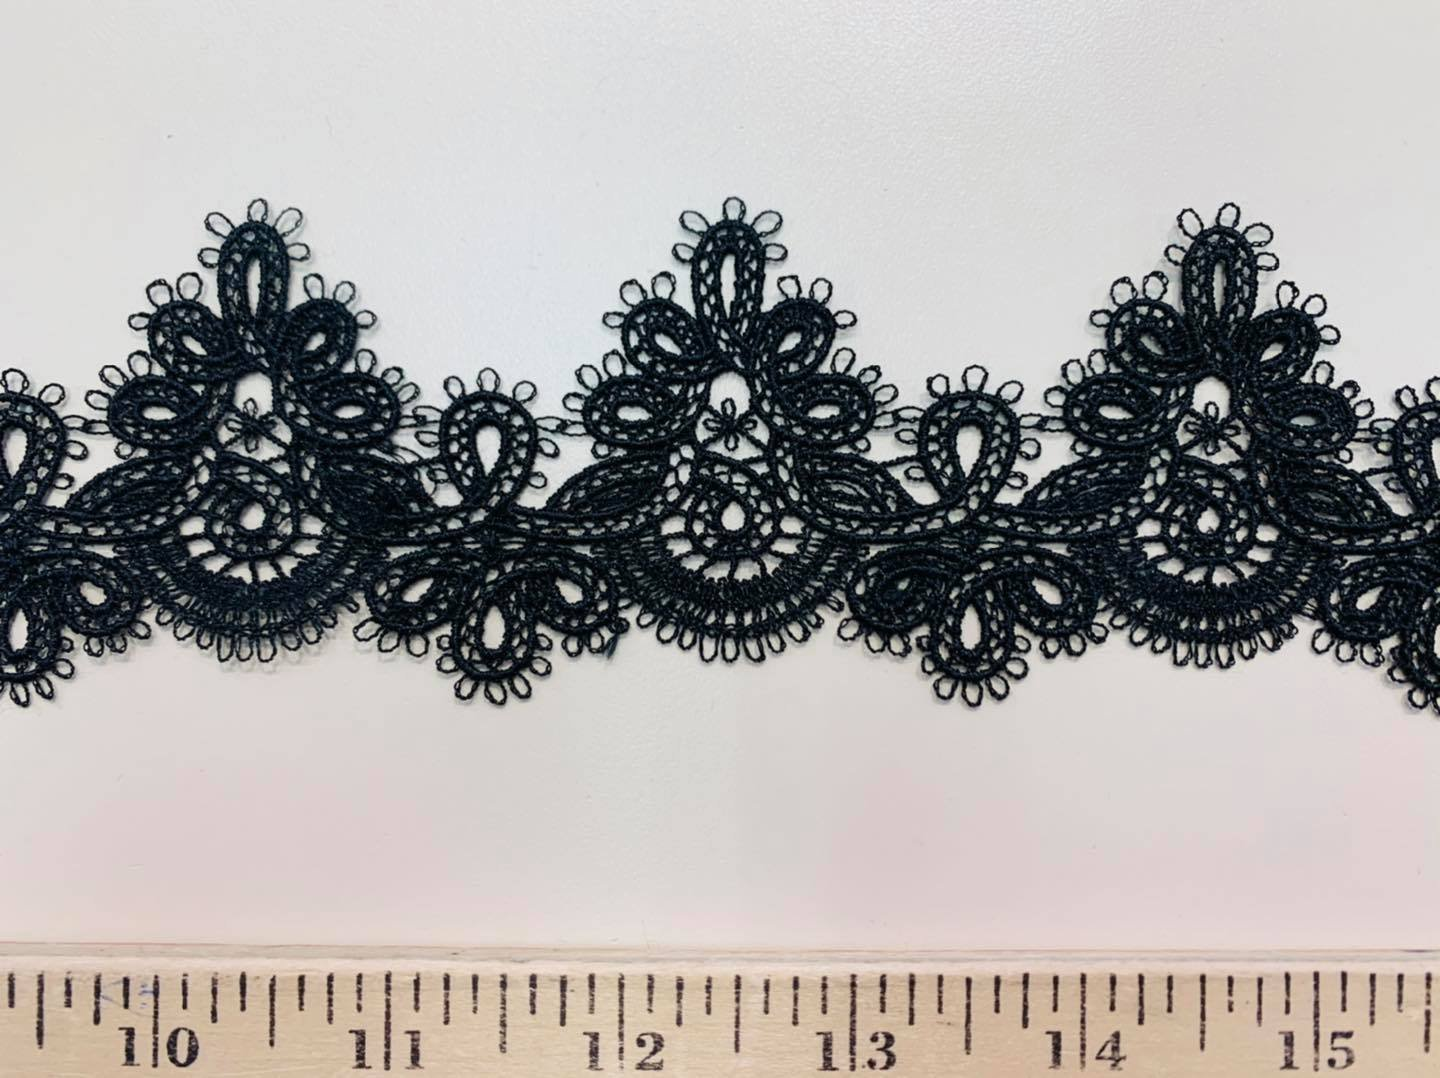 Loopy Lace Applique Ribbon in Black